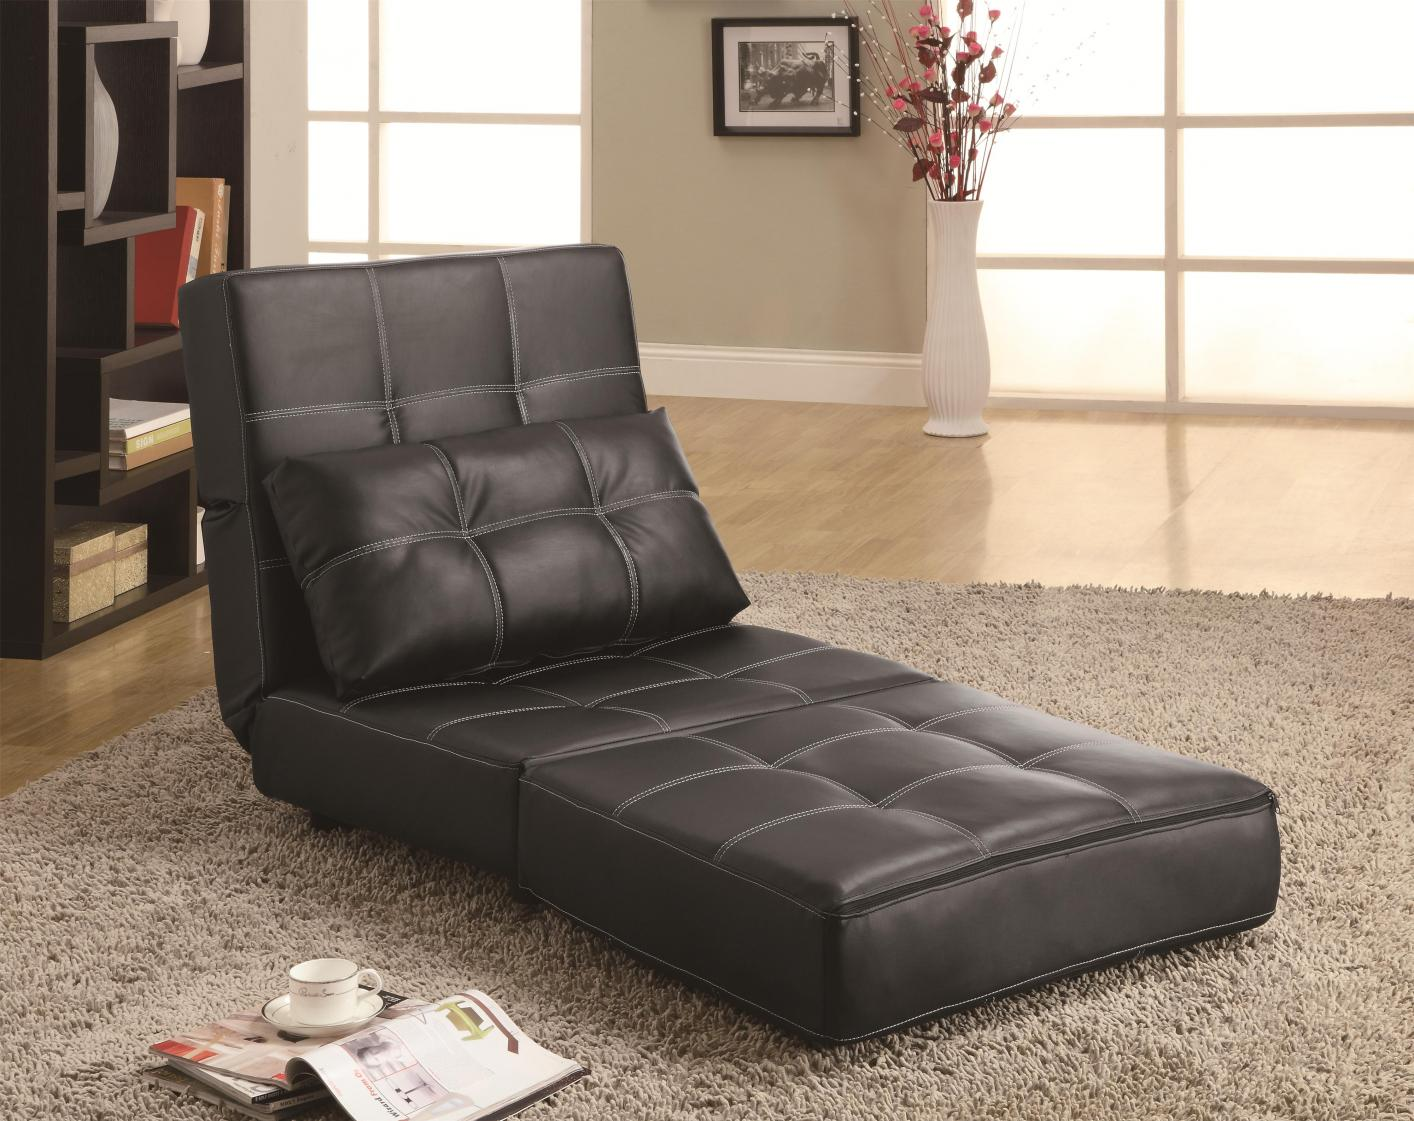 Armless Leather Chairs black leather armless chair - steal-a-sofa furniture outlet los